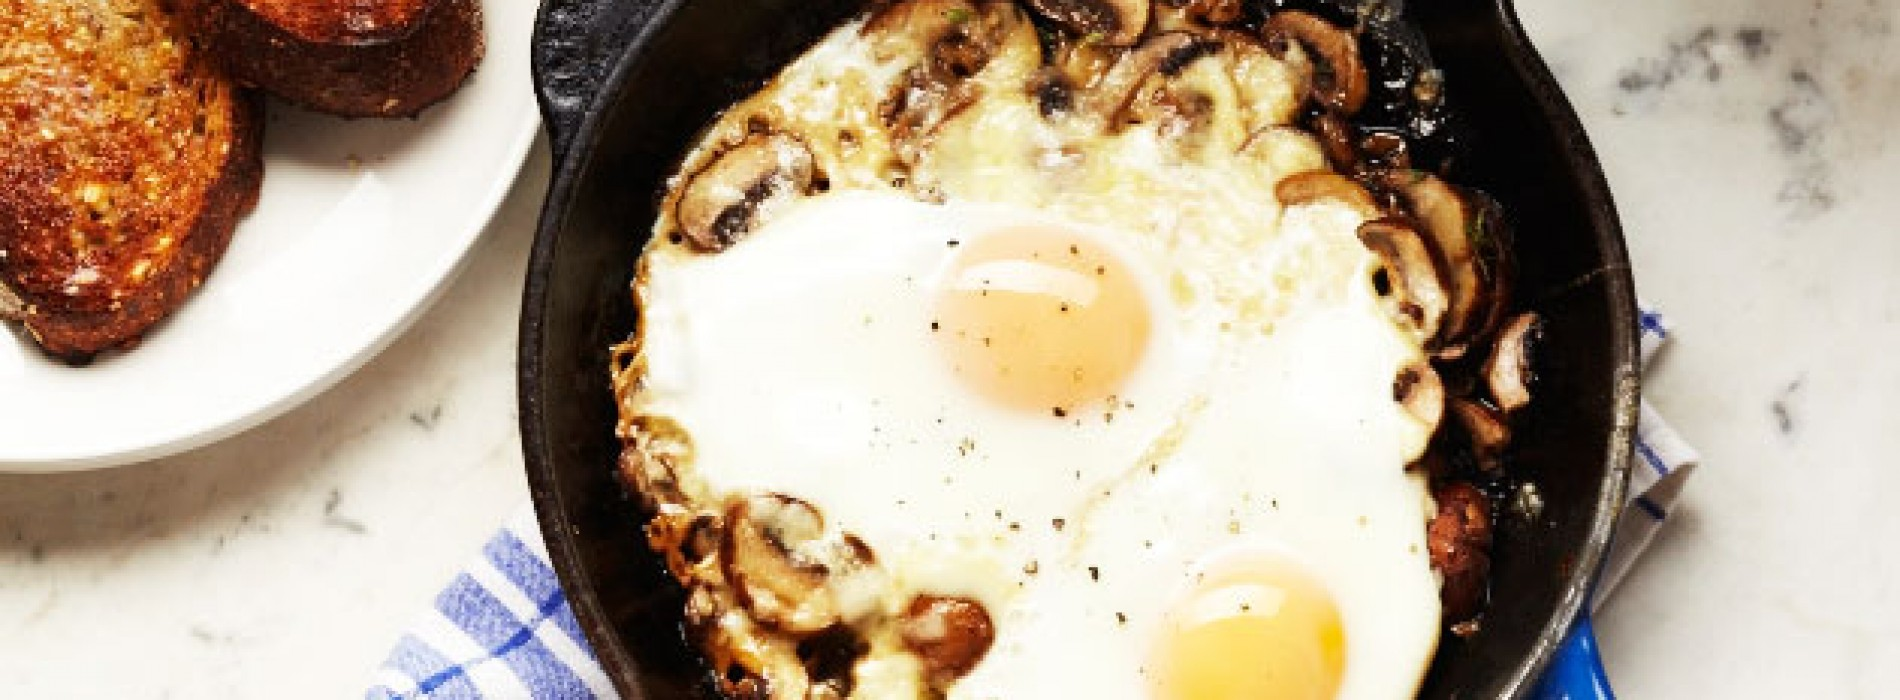 Baked Eggs with Mushrooms